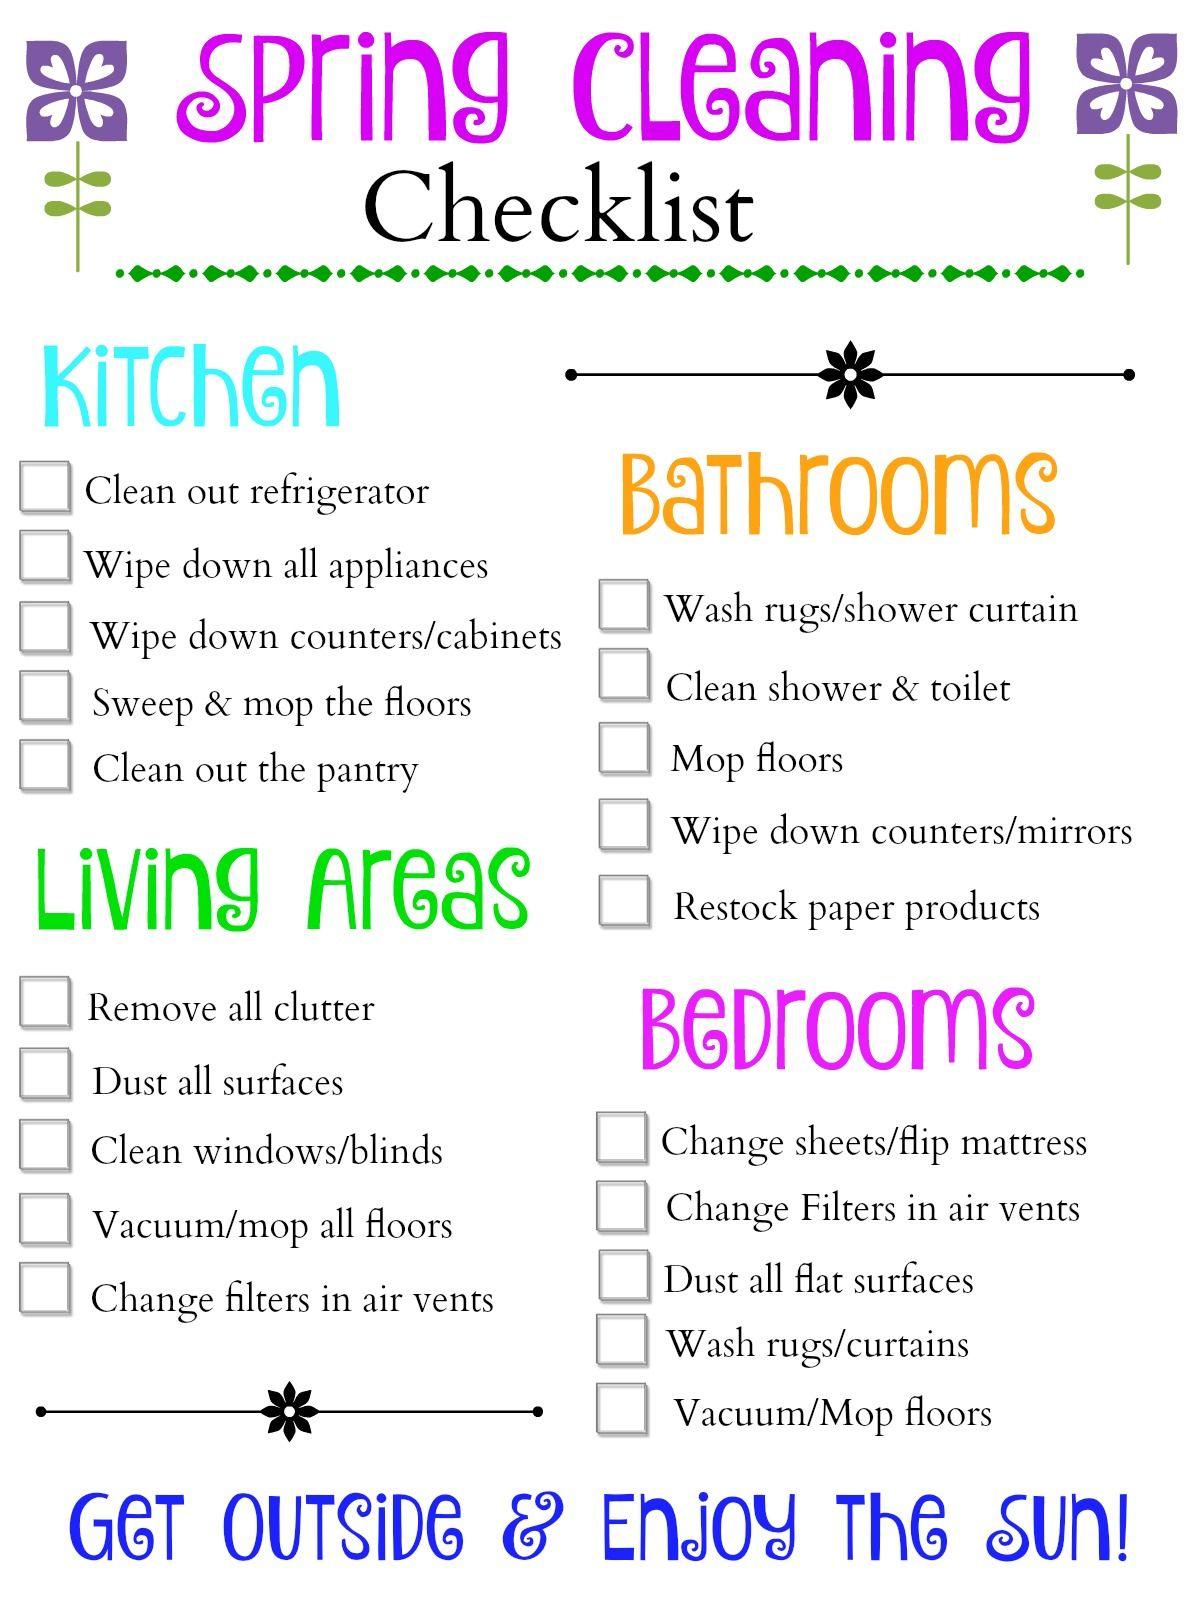 Use This Printalbe Spring Cleaning Checklist To Get A Jump Start